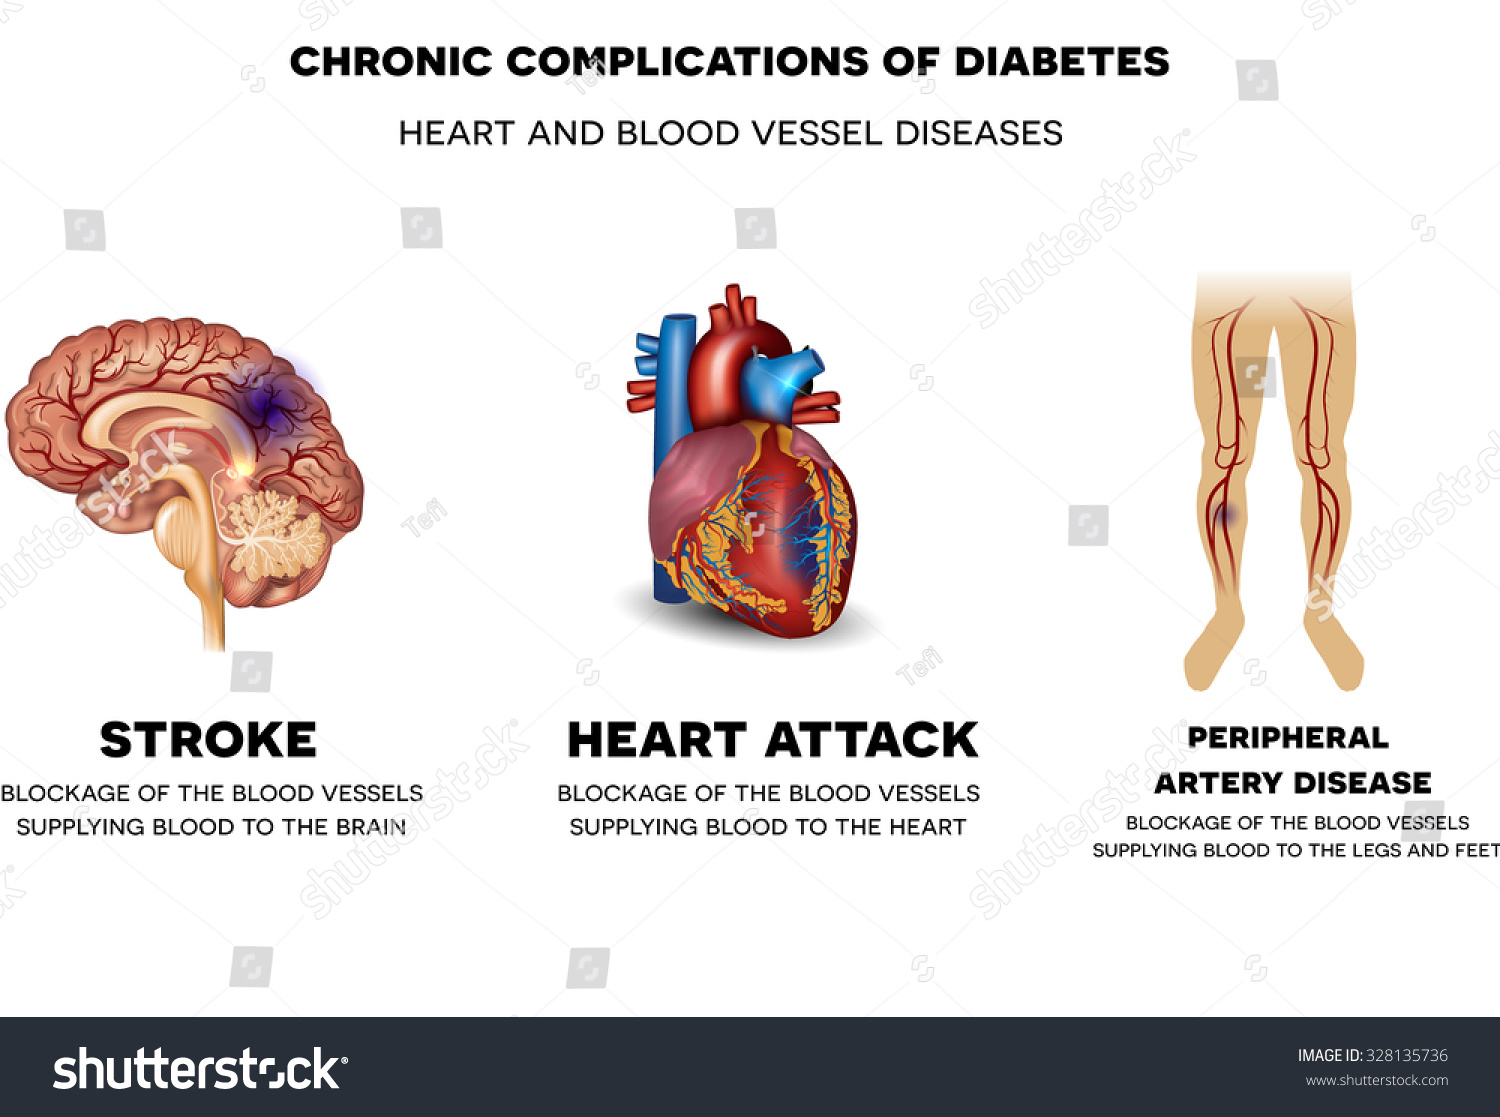 an analysis of diabetes in chronic diseases An overview of chronic disease models:  comprising mainly cardiovascular diseases, diabetes, chronic lung  the stratification analysis was performed by chronic.